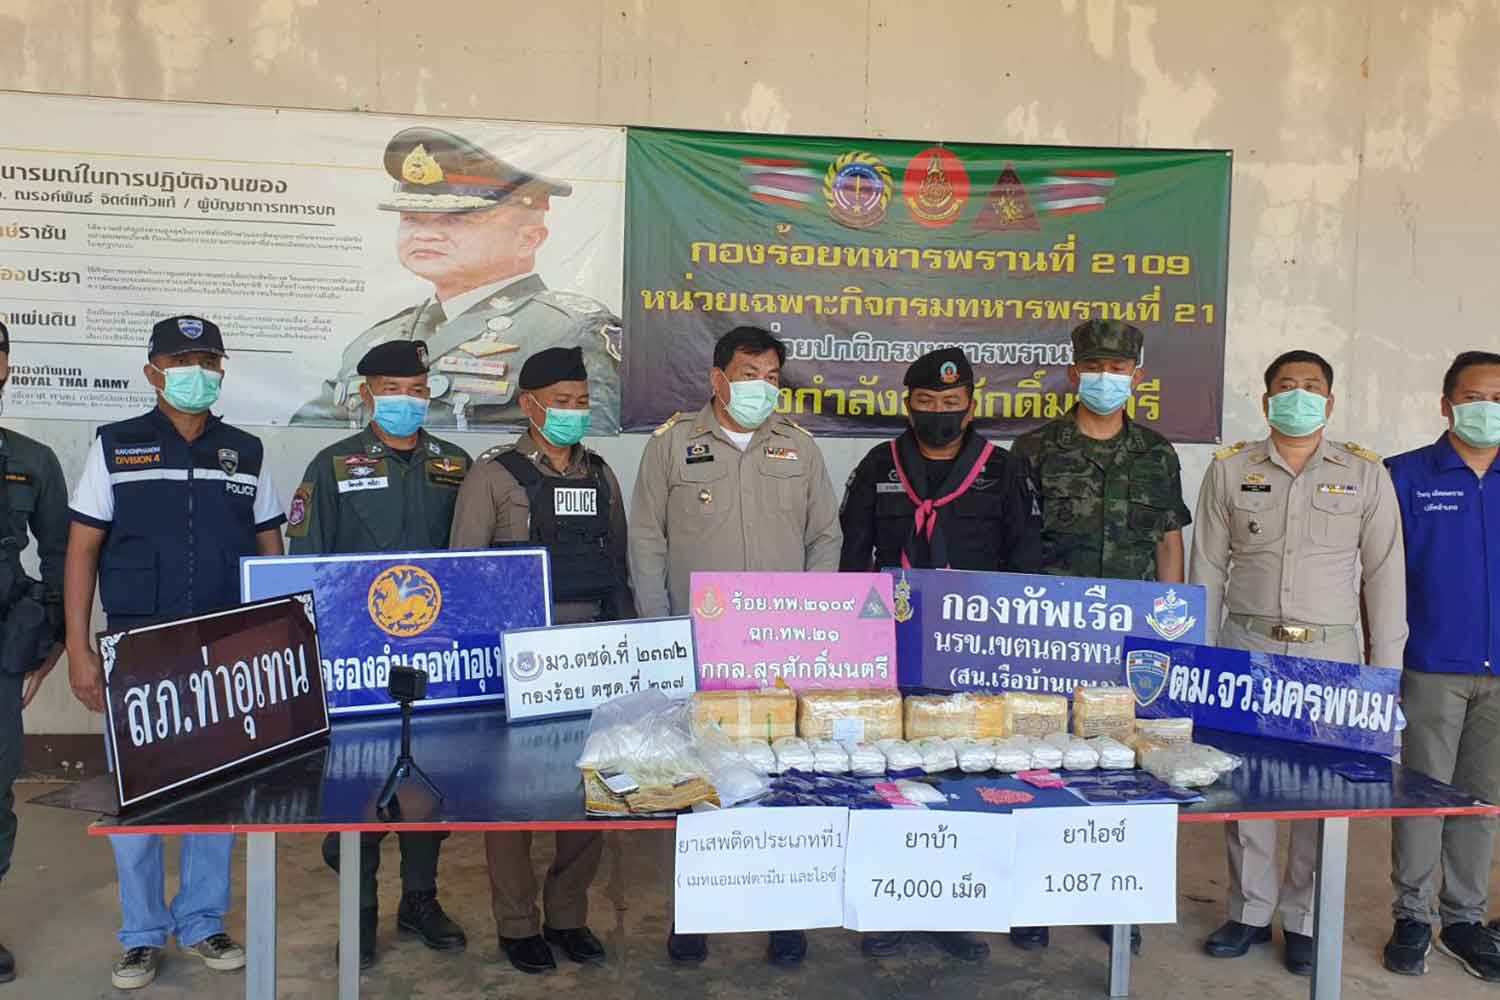 Packages containing 74,000 methamphetamine pills and 1.08 kilogrammes of crystal methamphetamine, seized on Tuesday night and displayed at Ranger Company 2019 headquarters in Tha Uthen district, Nakhon Phanom. (Photo: Pattanapong Sripiachai)